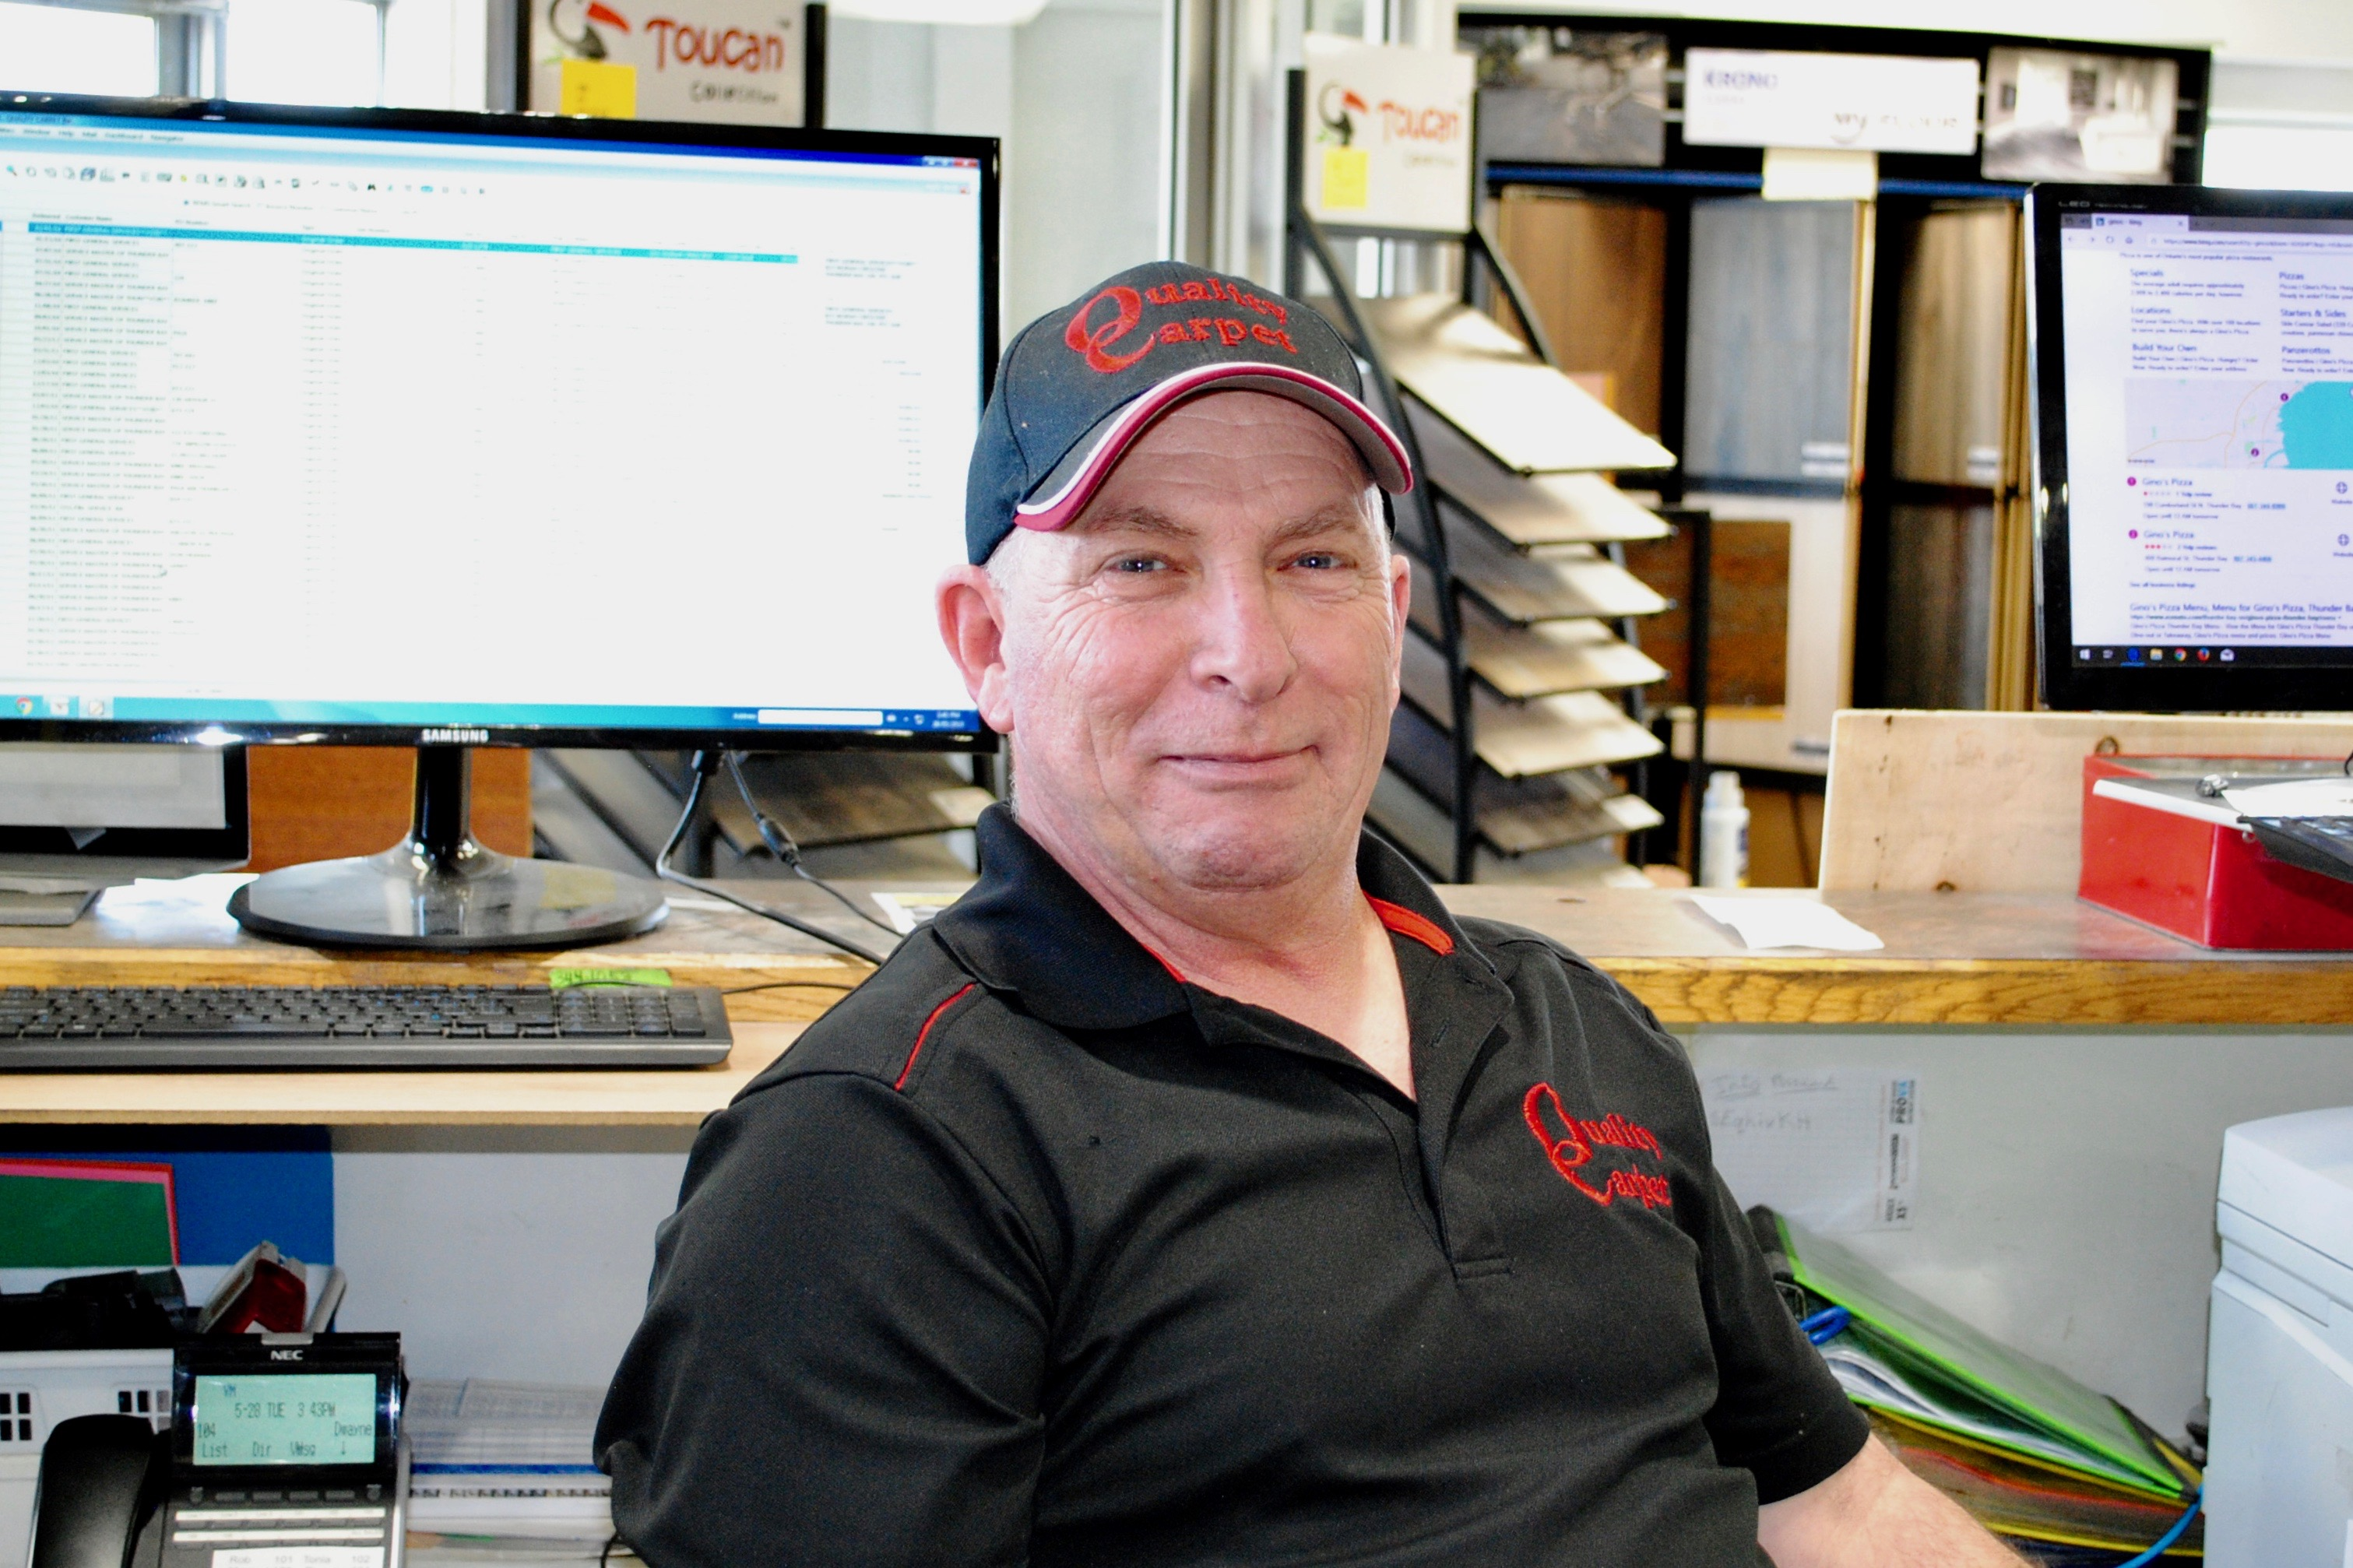 Dwayne, Quality Carpet Sales Rep Quality Carpet in Thunder Bay, Ontario